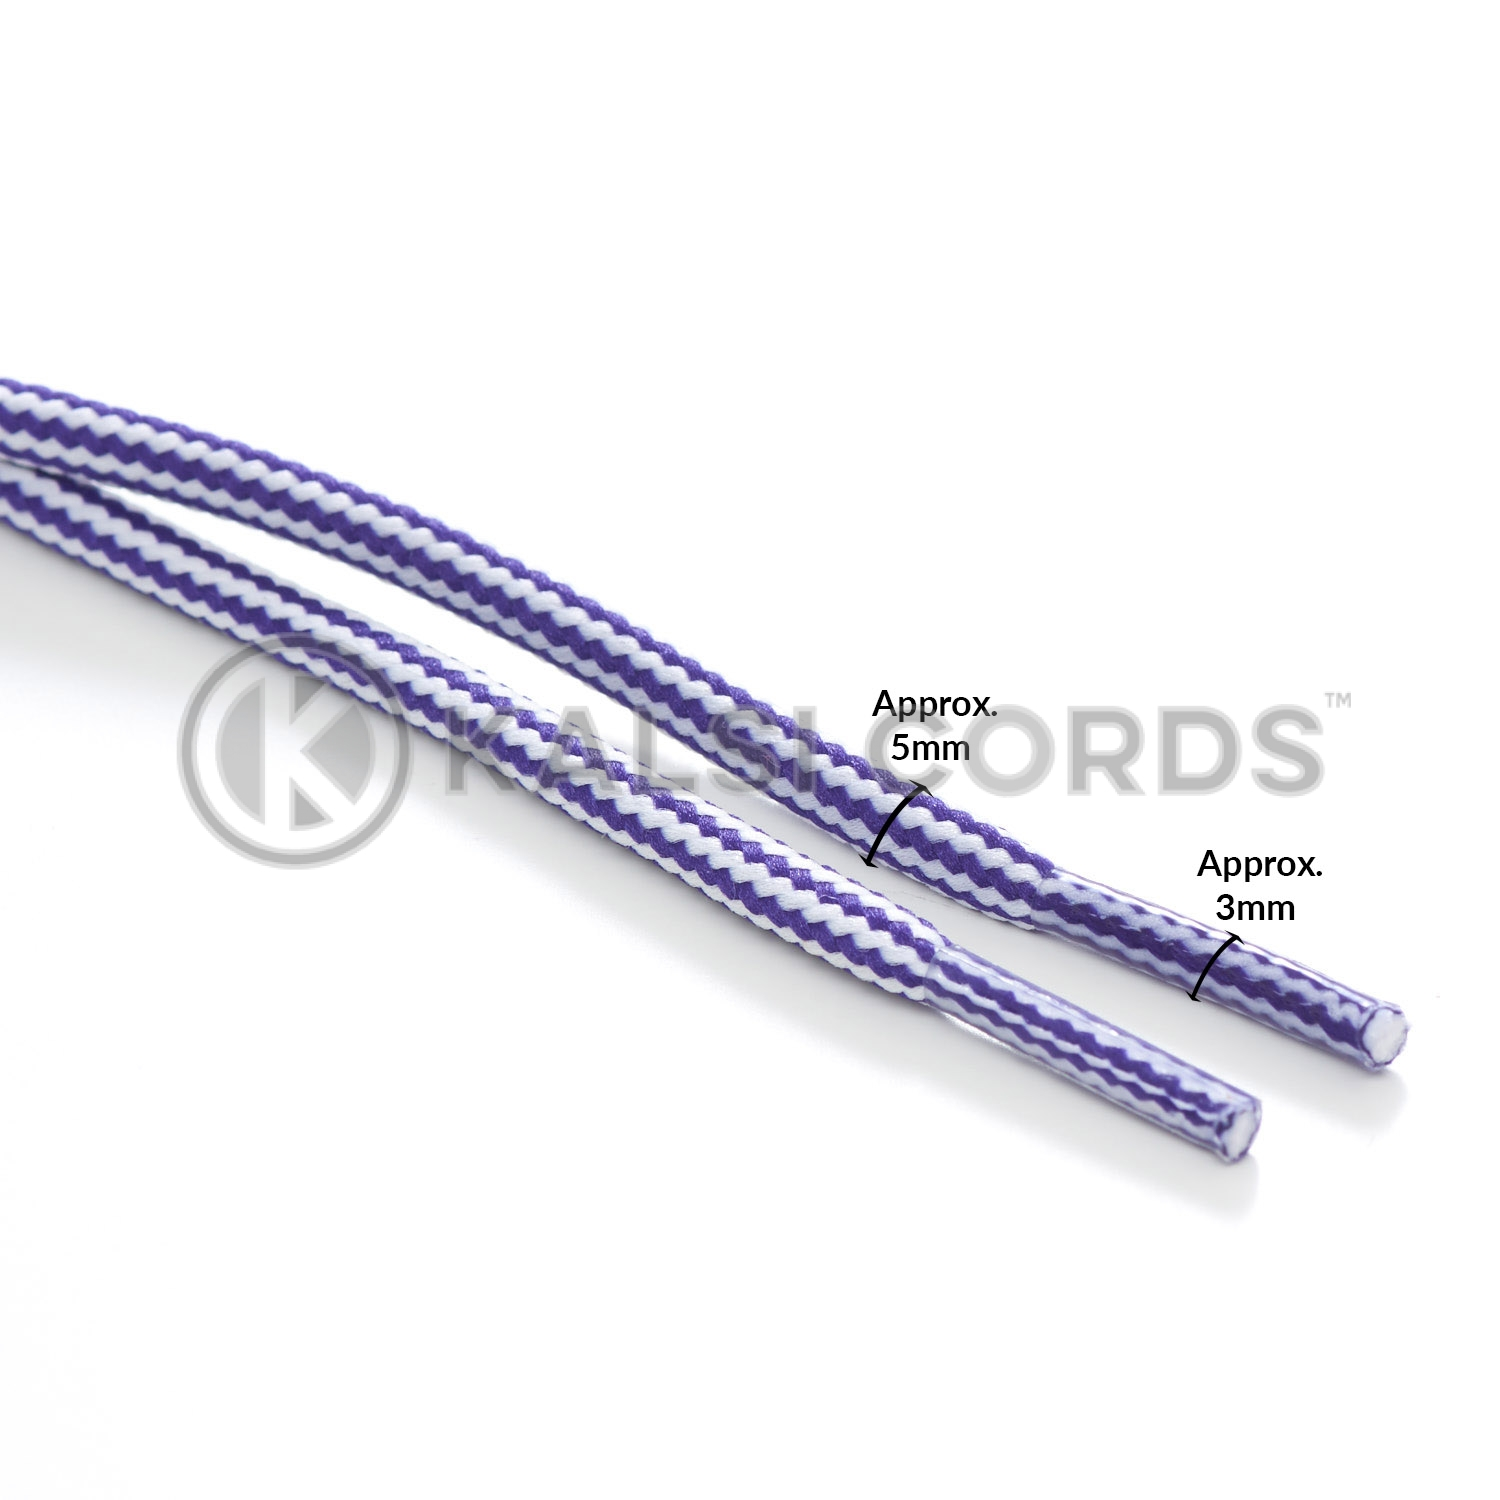 T621 5mm Round Cord Stripe Shoe Laces Purple White Kids Trainers Adults Hiking Walking Boots Kalsi Cords